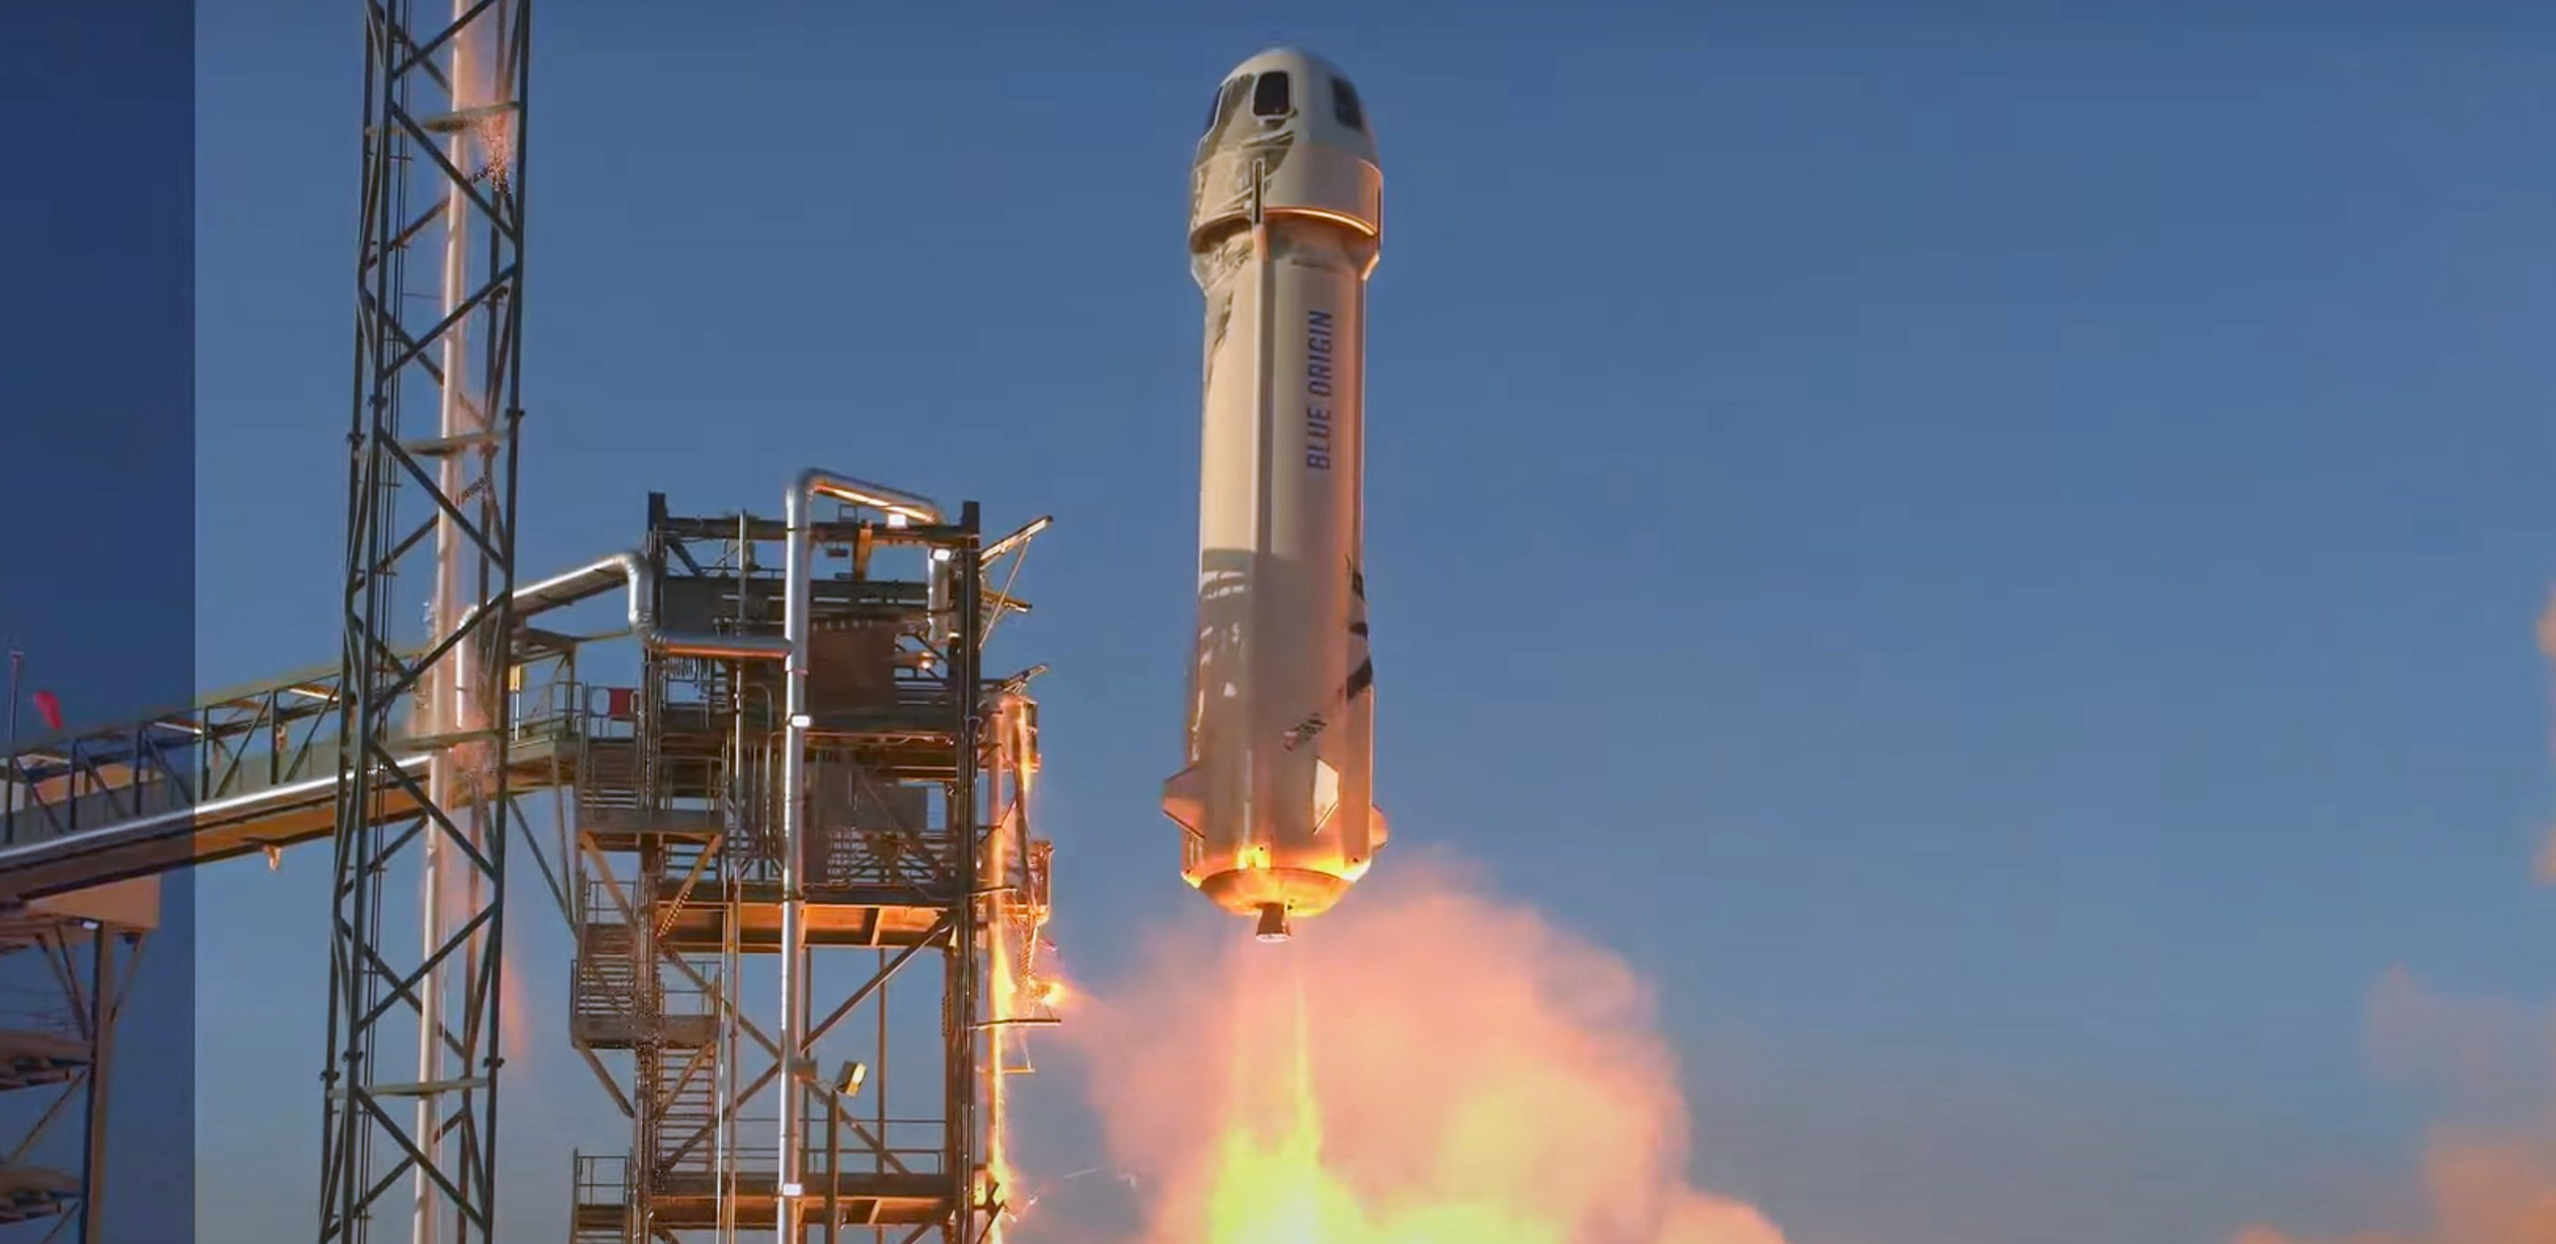 New Shepard NS-13 launch 101320 (Blue Origin) 1 edit